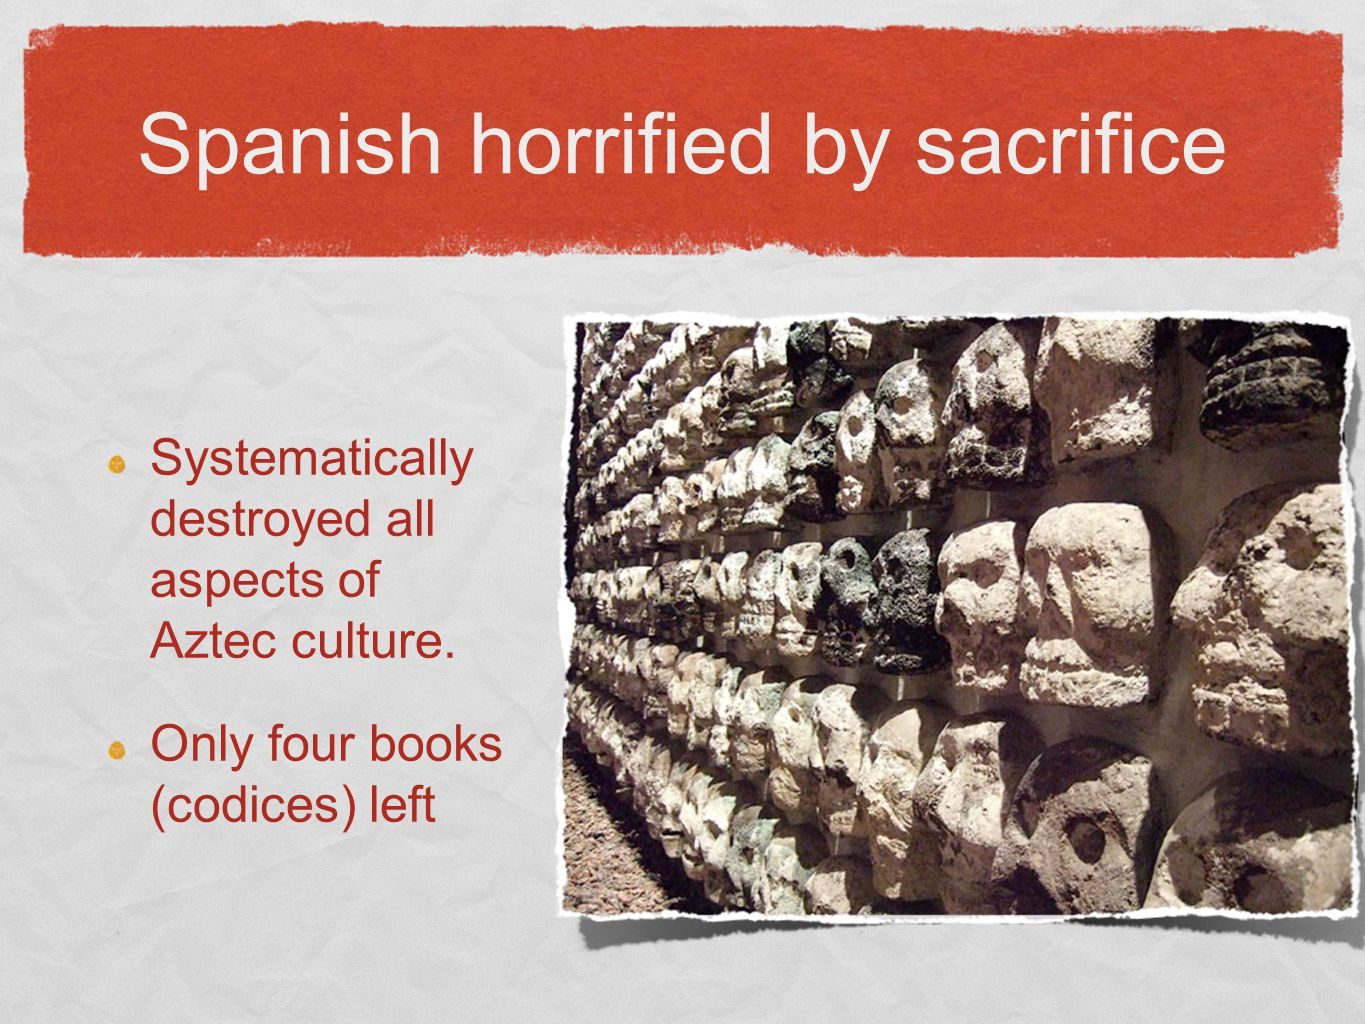 Spanish horrified by sacrifice